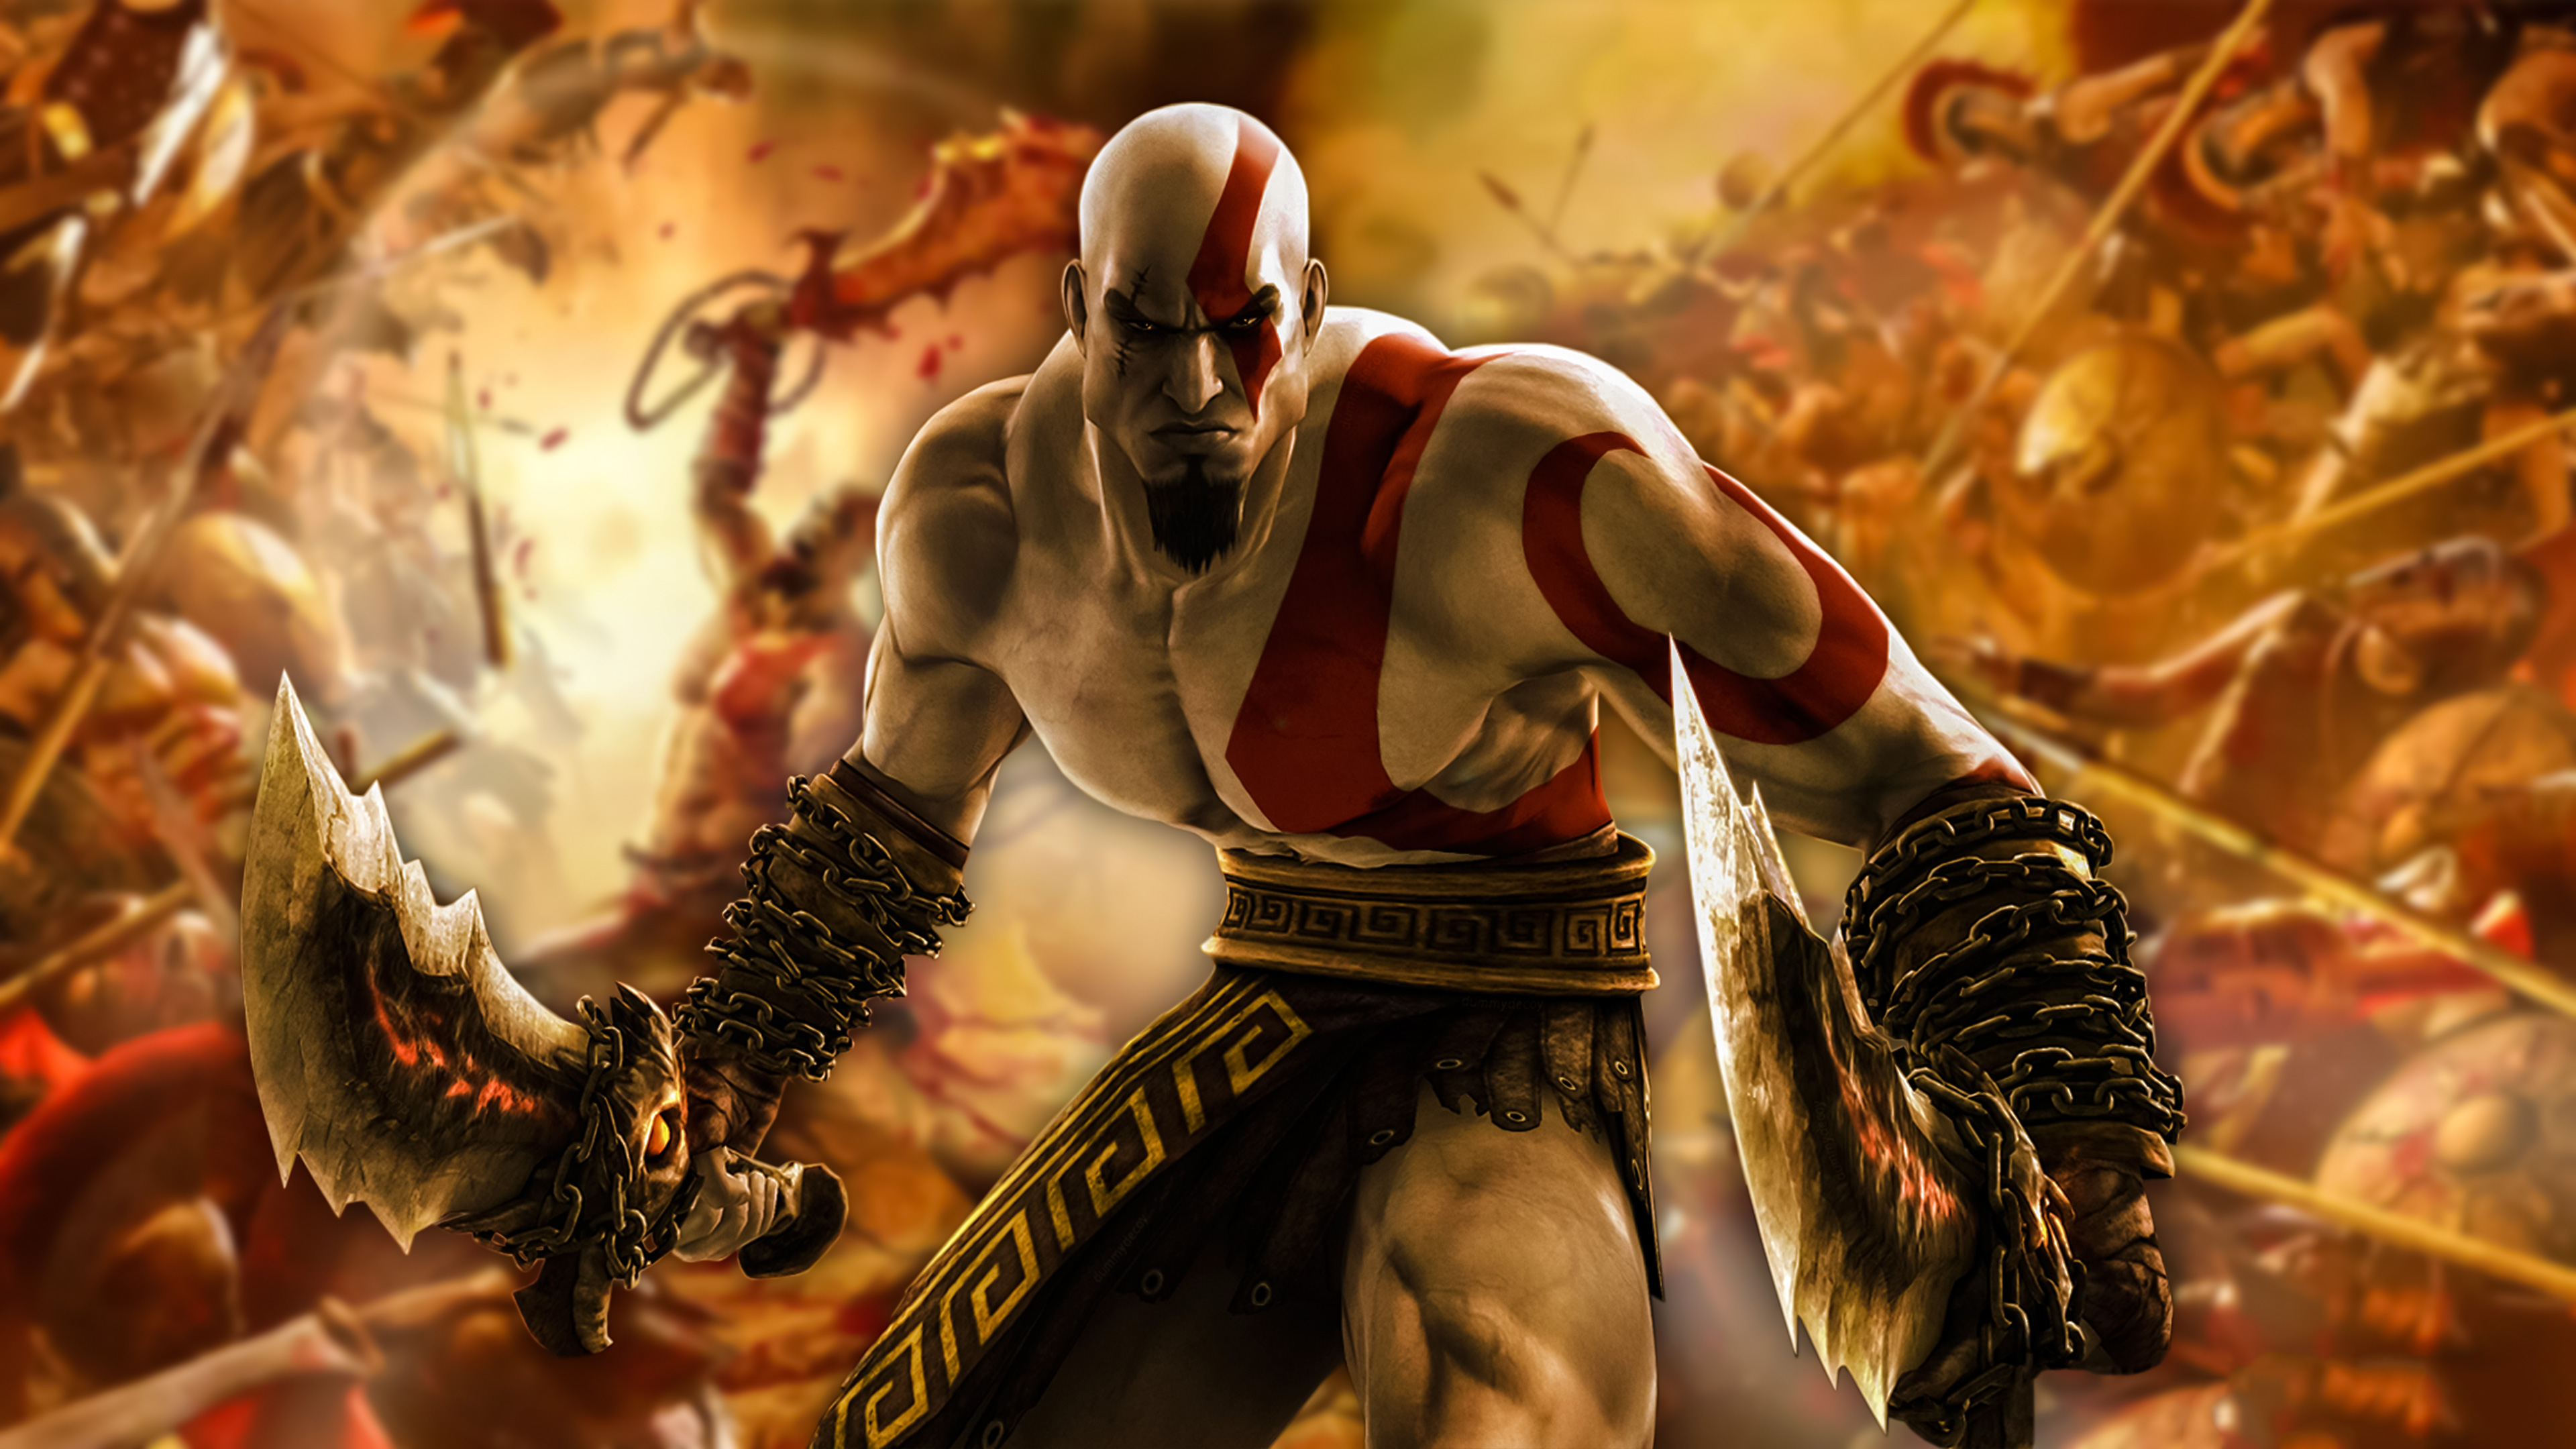 Kratos god of war 4k game hd games 4k wallpapers images backgrounds photos and pictures - God of war wallpaper hd 3d ...